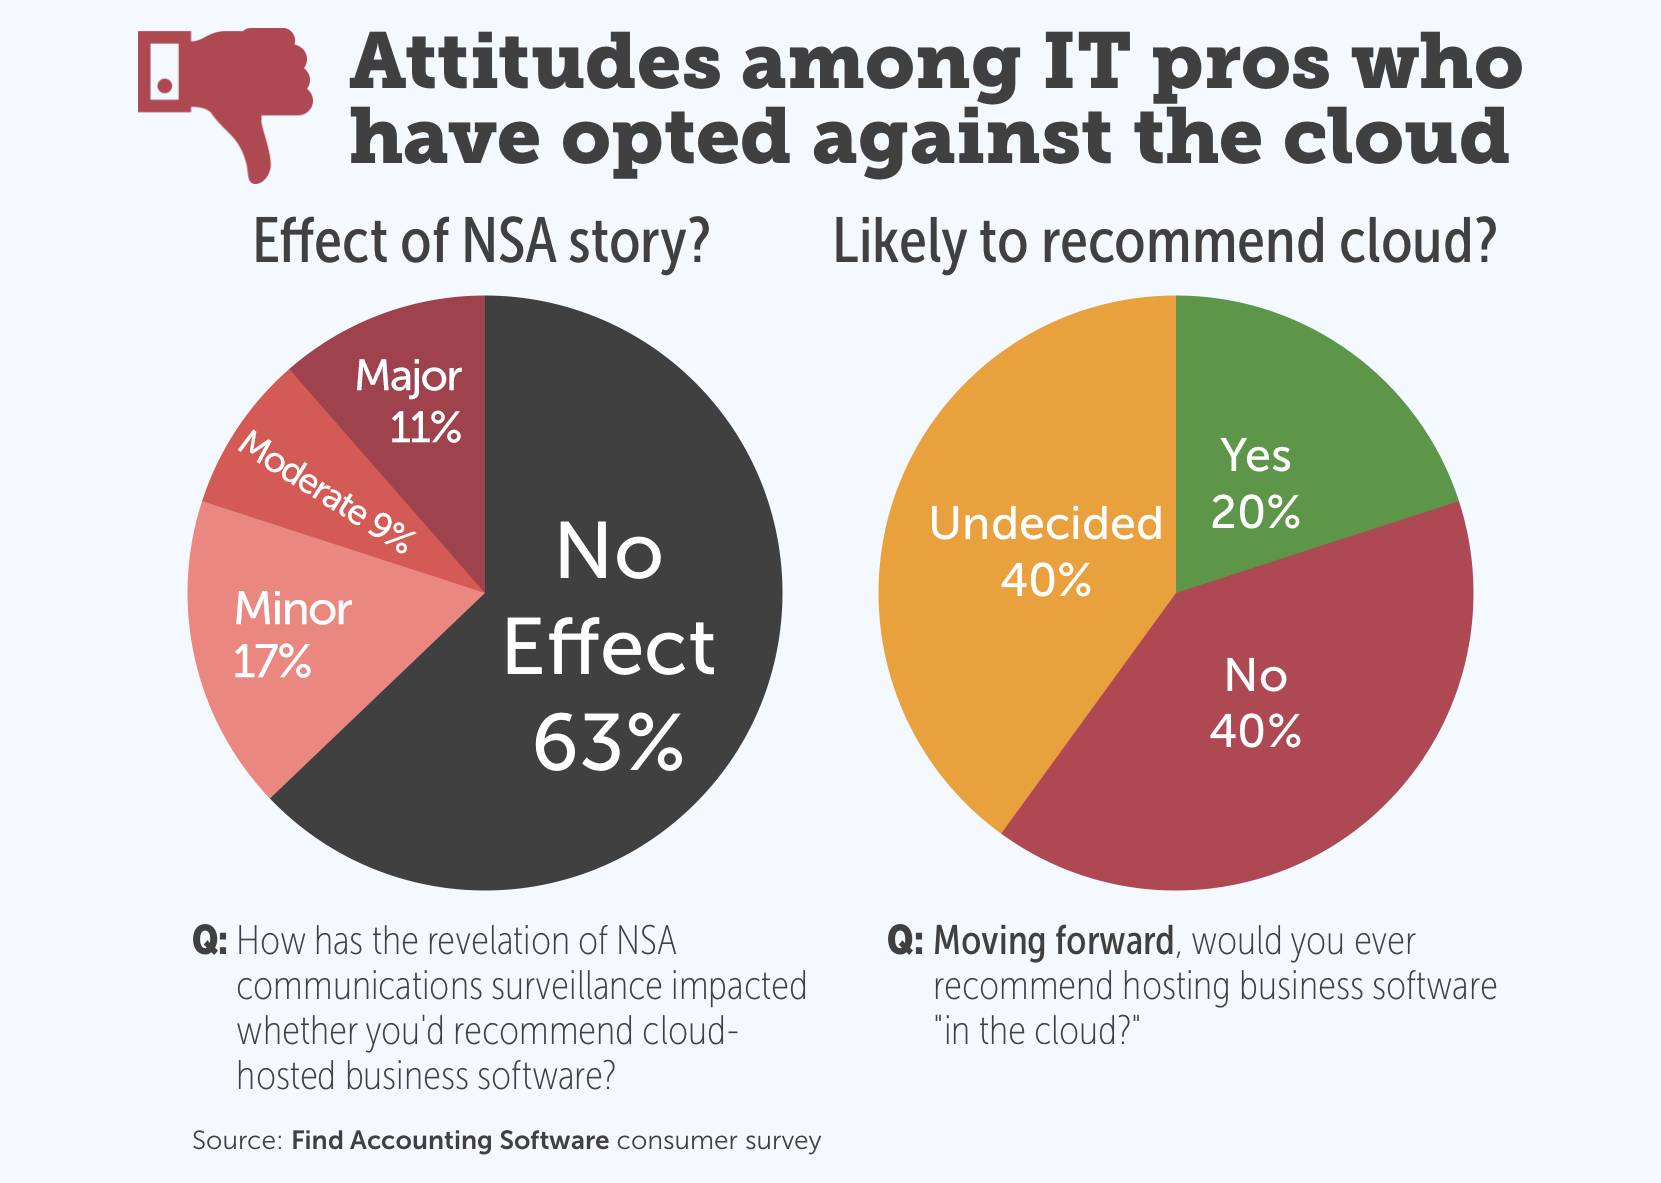 Attitudes among IT pros who have opted against the cloud